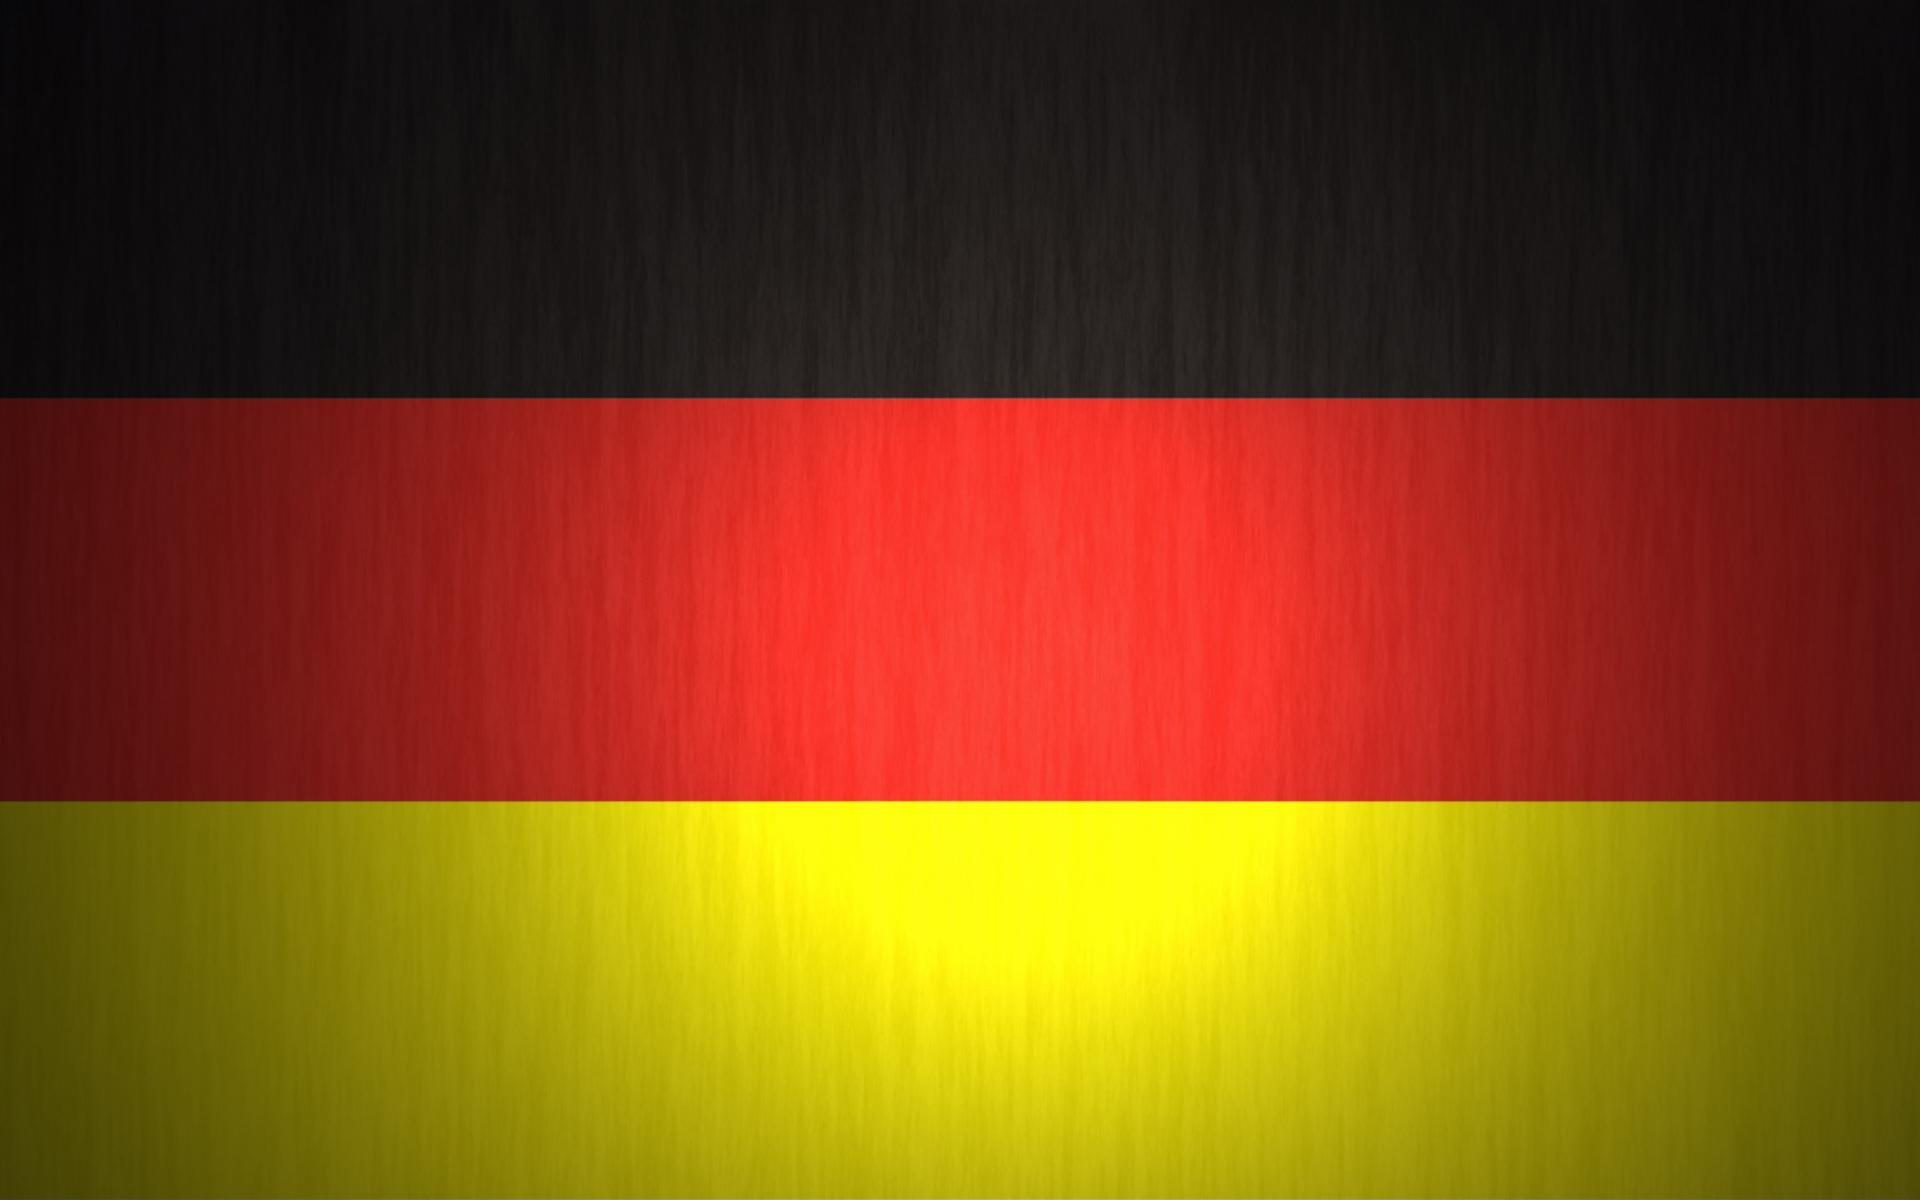 Germany Flag, 1920x1200 Irina Alvarenga